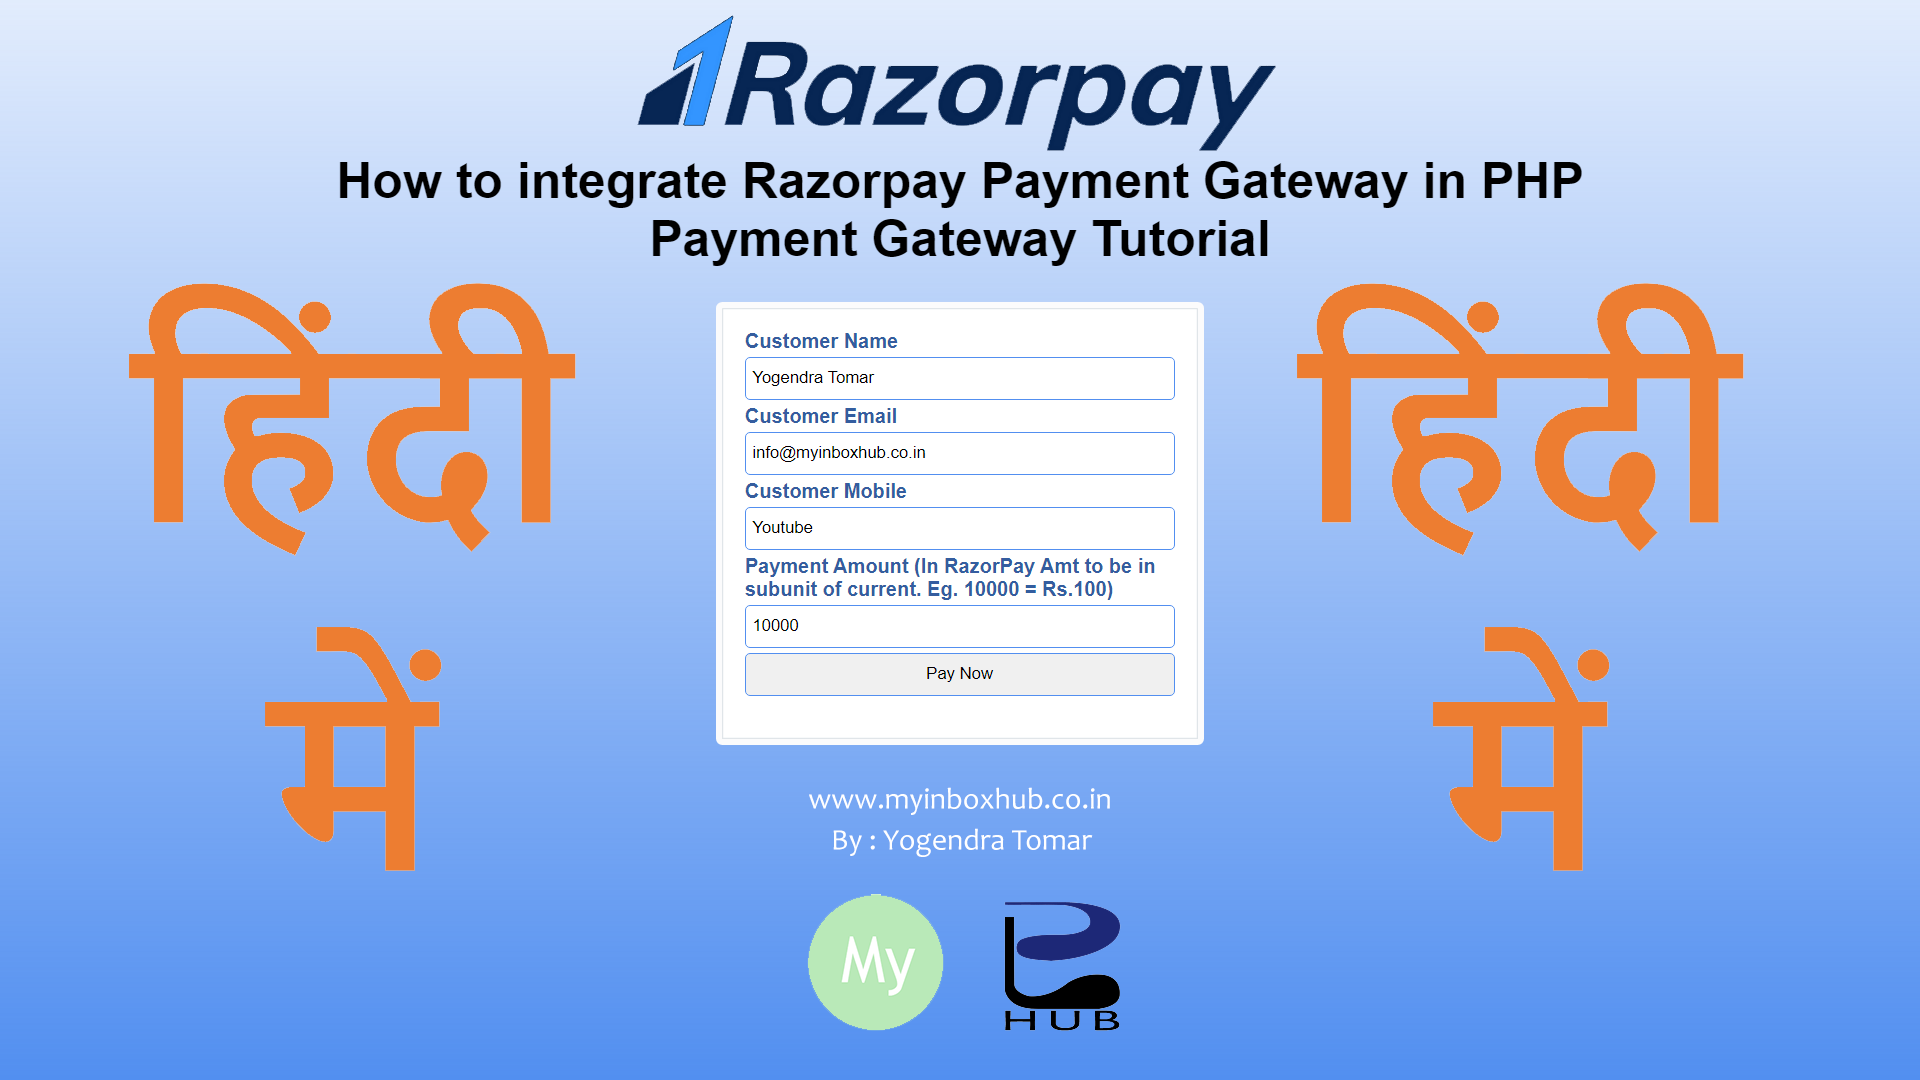 How to integrate Razorpay Payment Gateway in PHP - Payment Gateway Tutorial